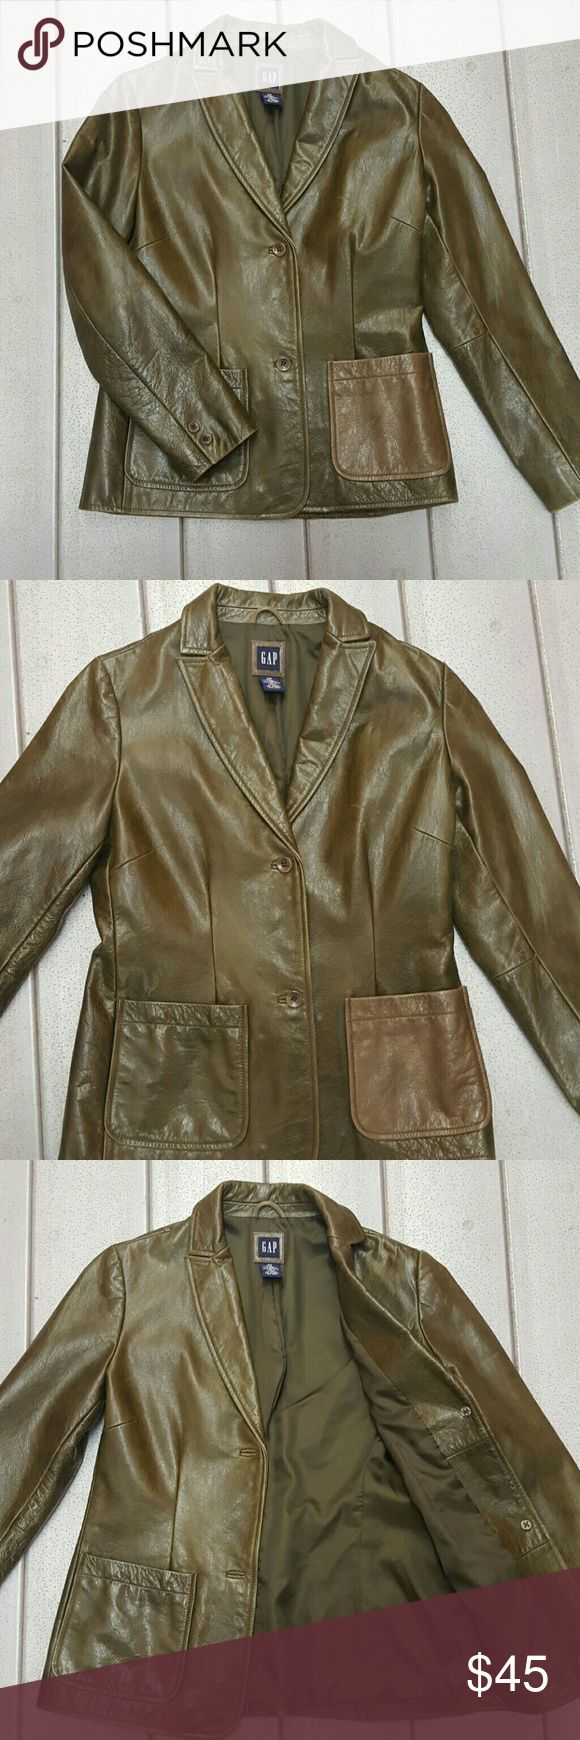 Vintage Style Olive Green, Leather, GAP Jacket XS Vintage Style Olive Green, Leather, GAP Jacket Size XS  Measurements: Armpit to armpit 18 inch across Shoulder to cuff 23 inches Top to bottom 24 inches GAP Jackets & Coats Blazers